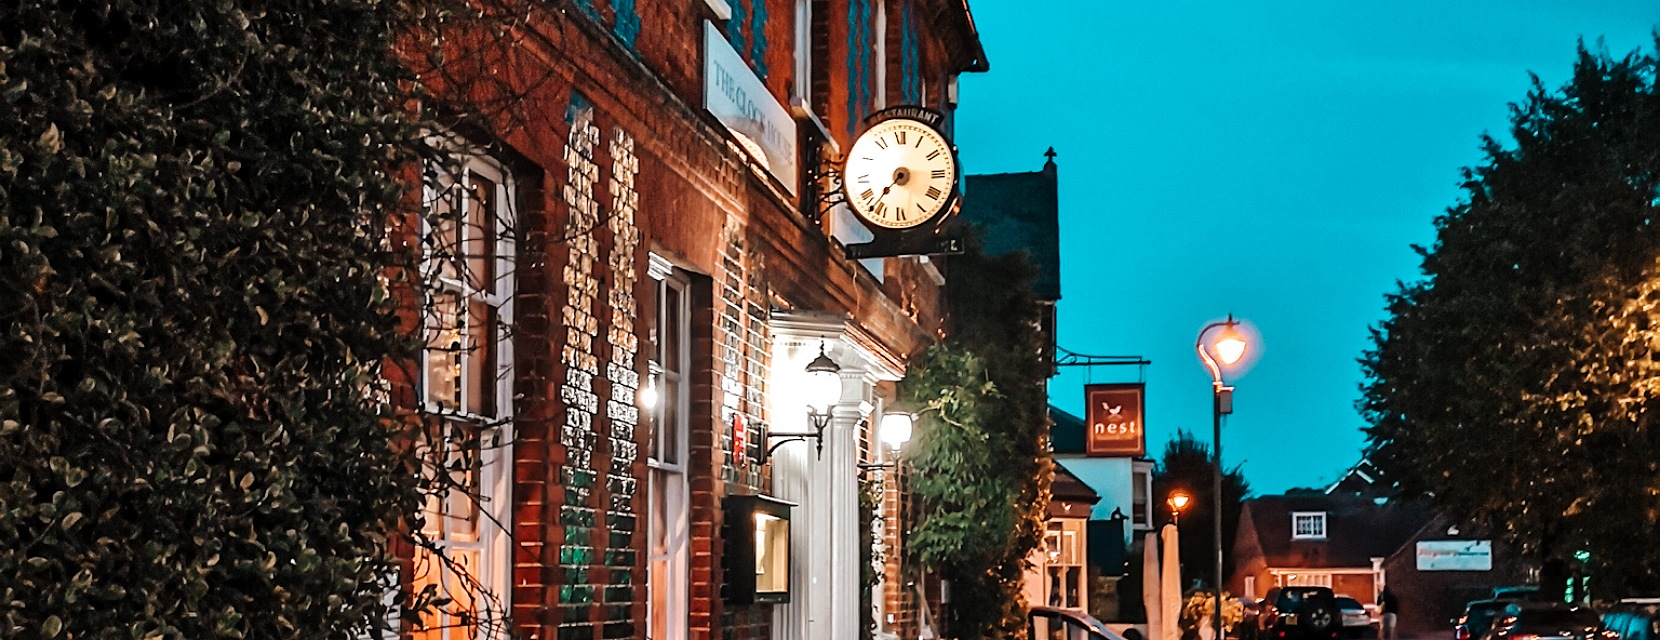 Restaurant recommendation: The Clock House, romantic fine dining in Surrey 47